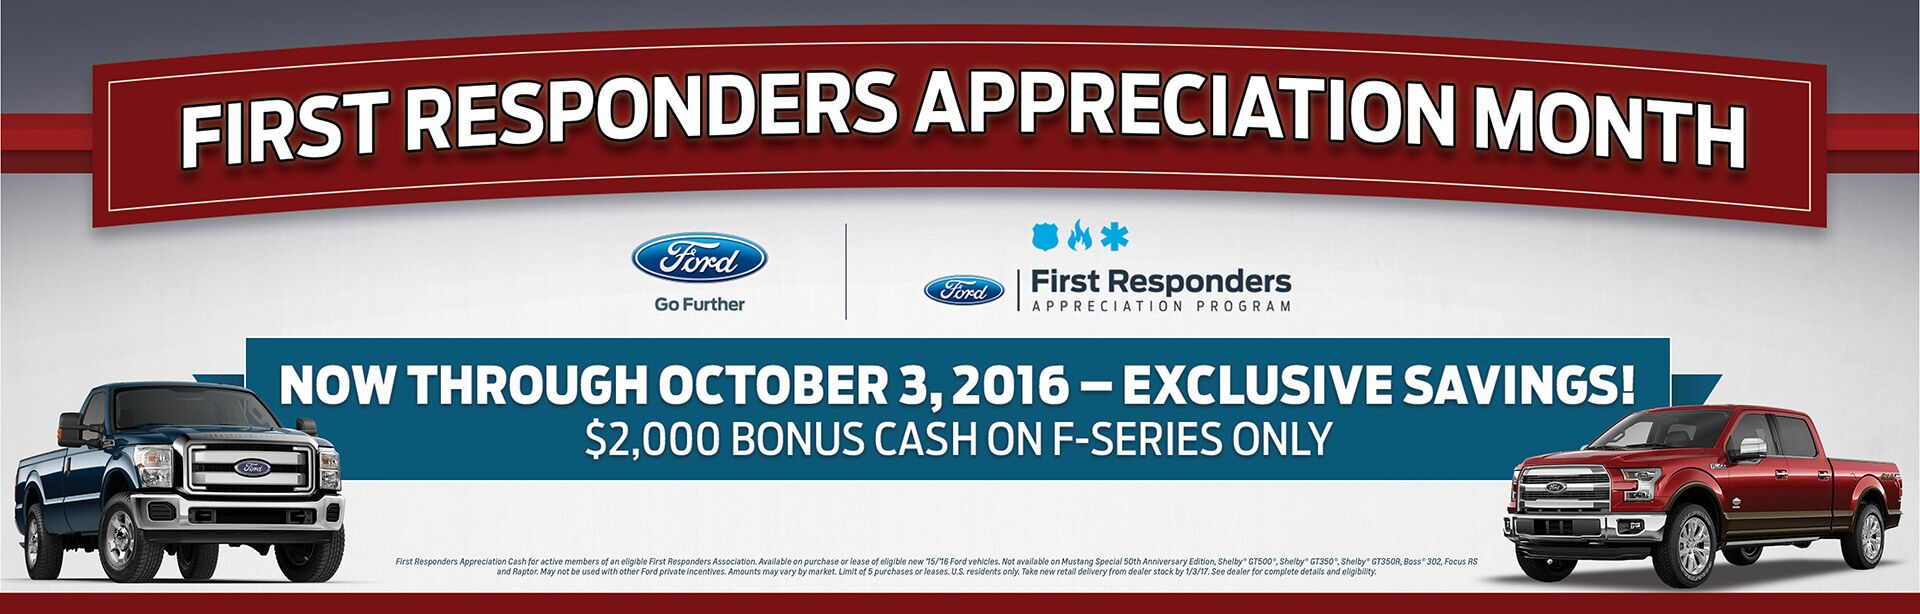 Ford First Responder >> First Responders Appreciation Month 2 000 Bonus Cash On F Series